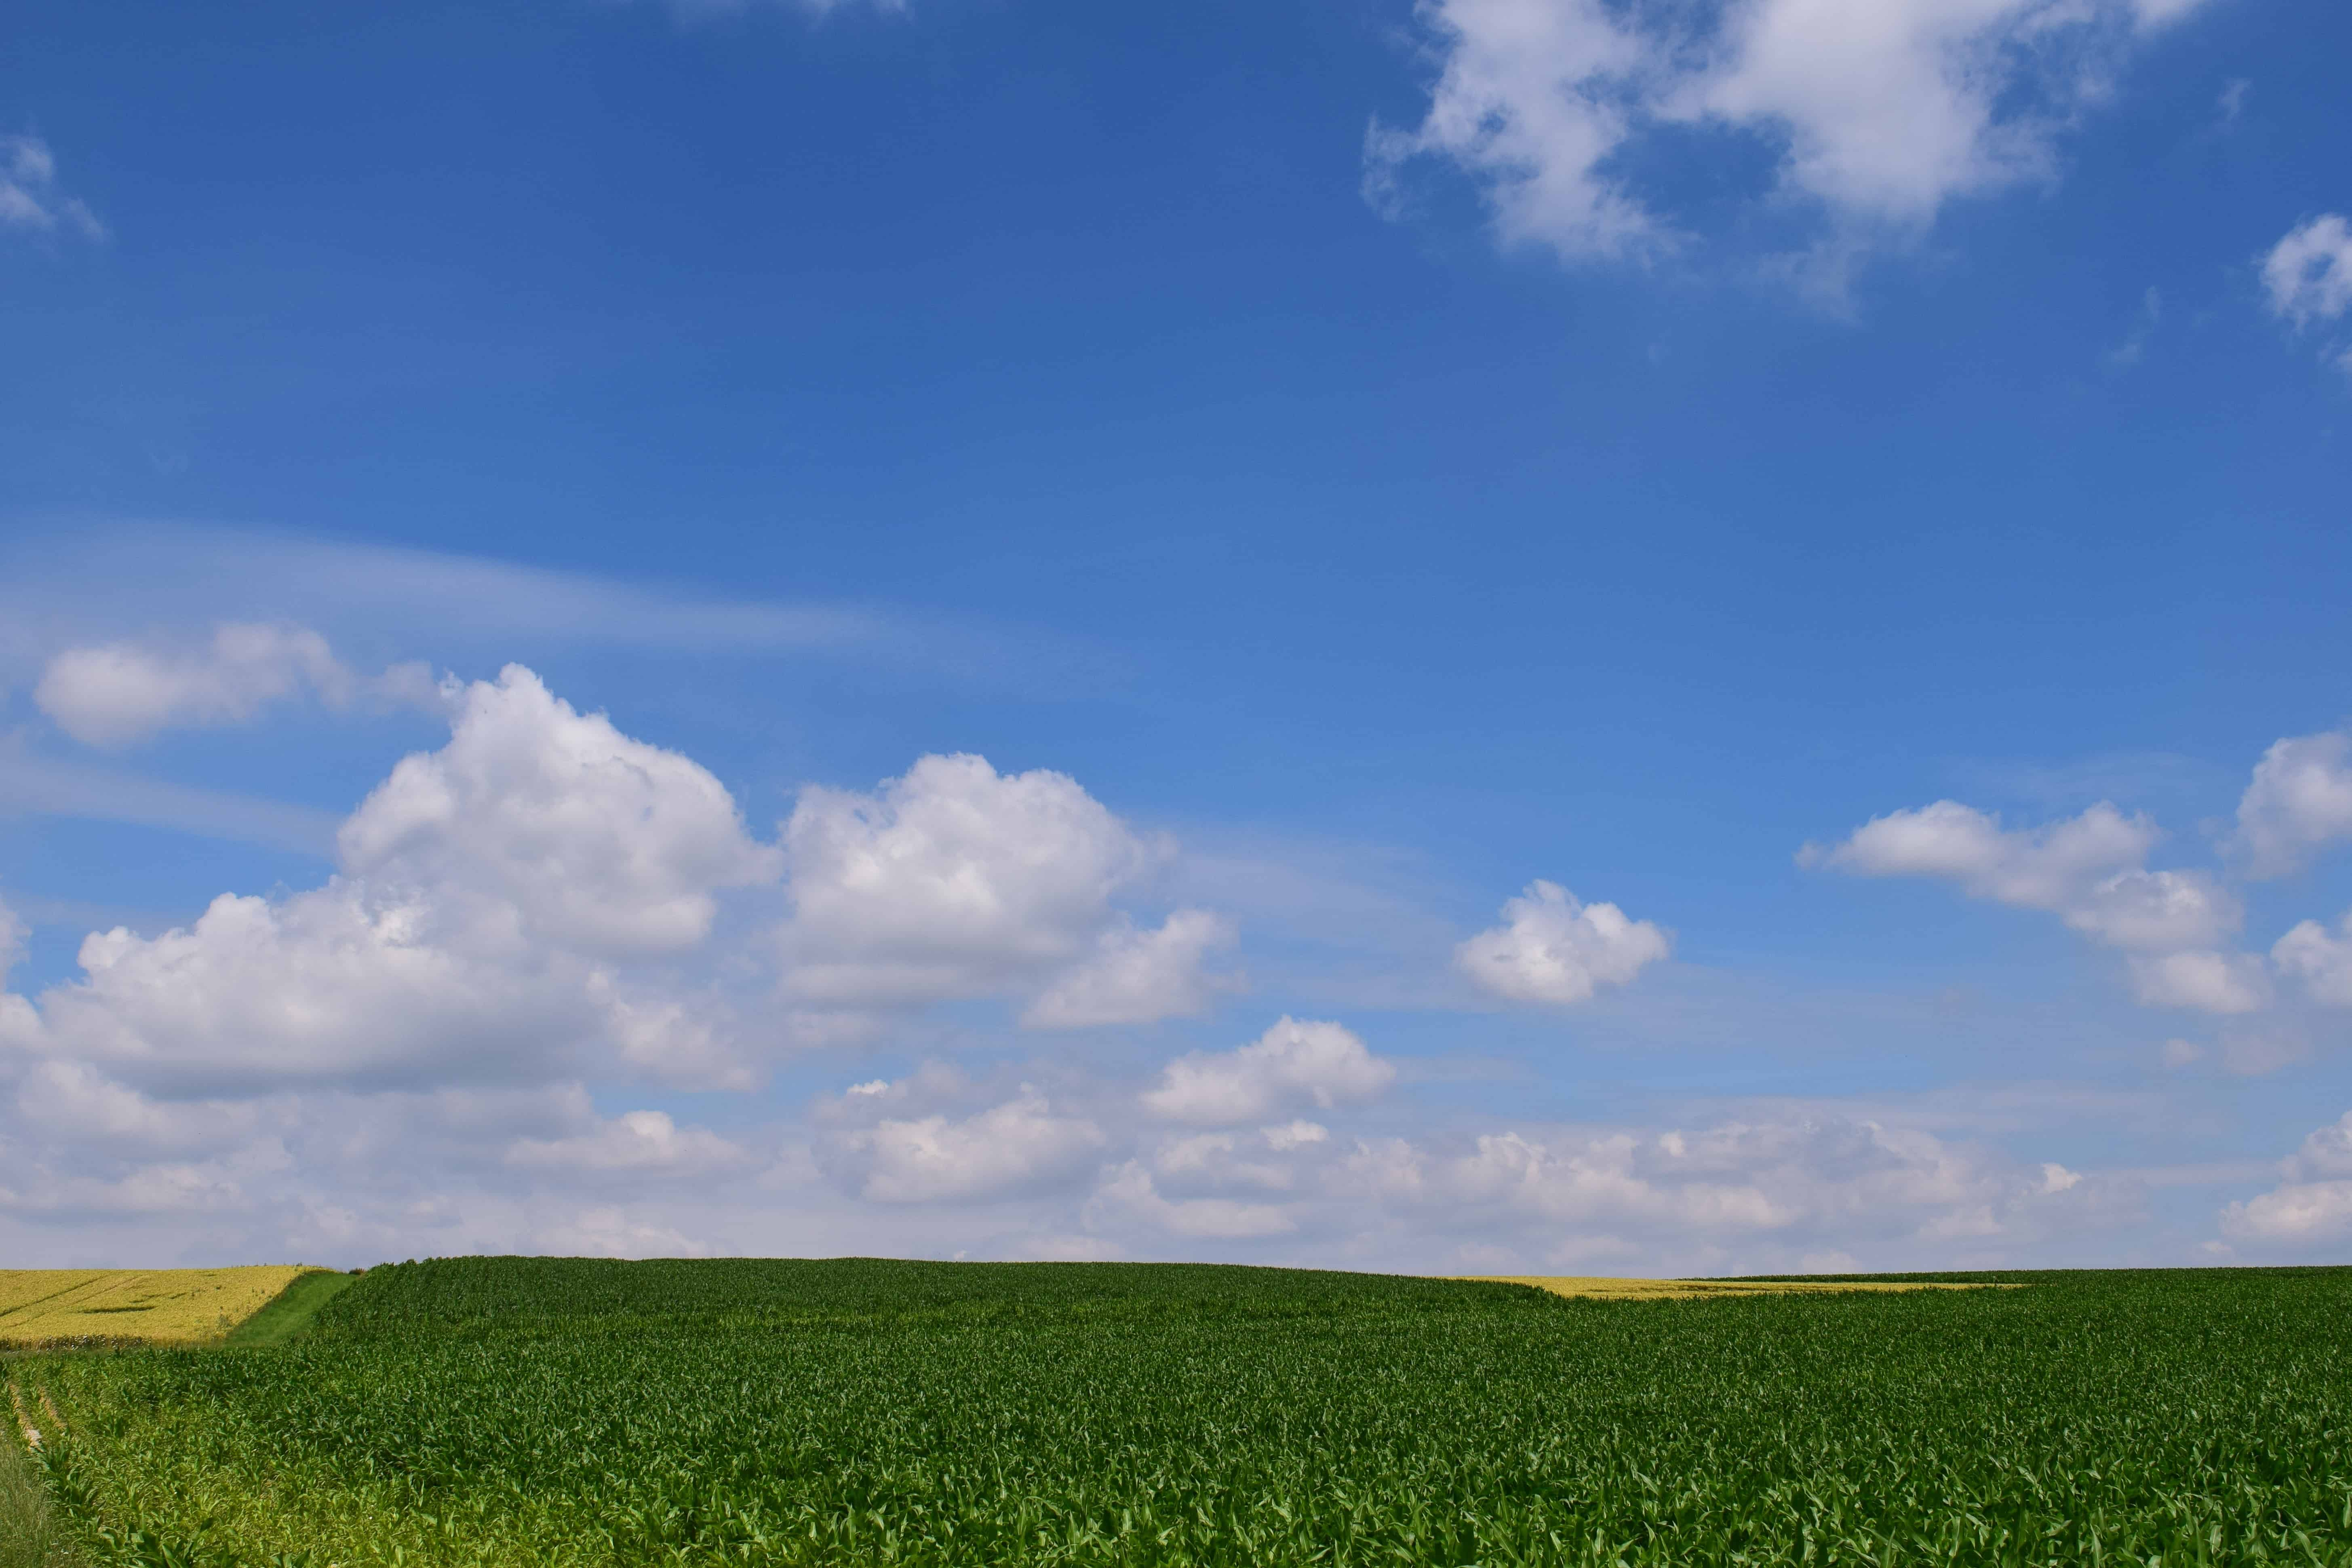 Free picture landscape agriculture blue sky cloud green grass